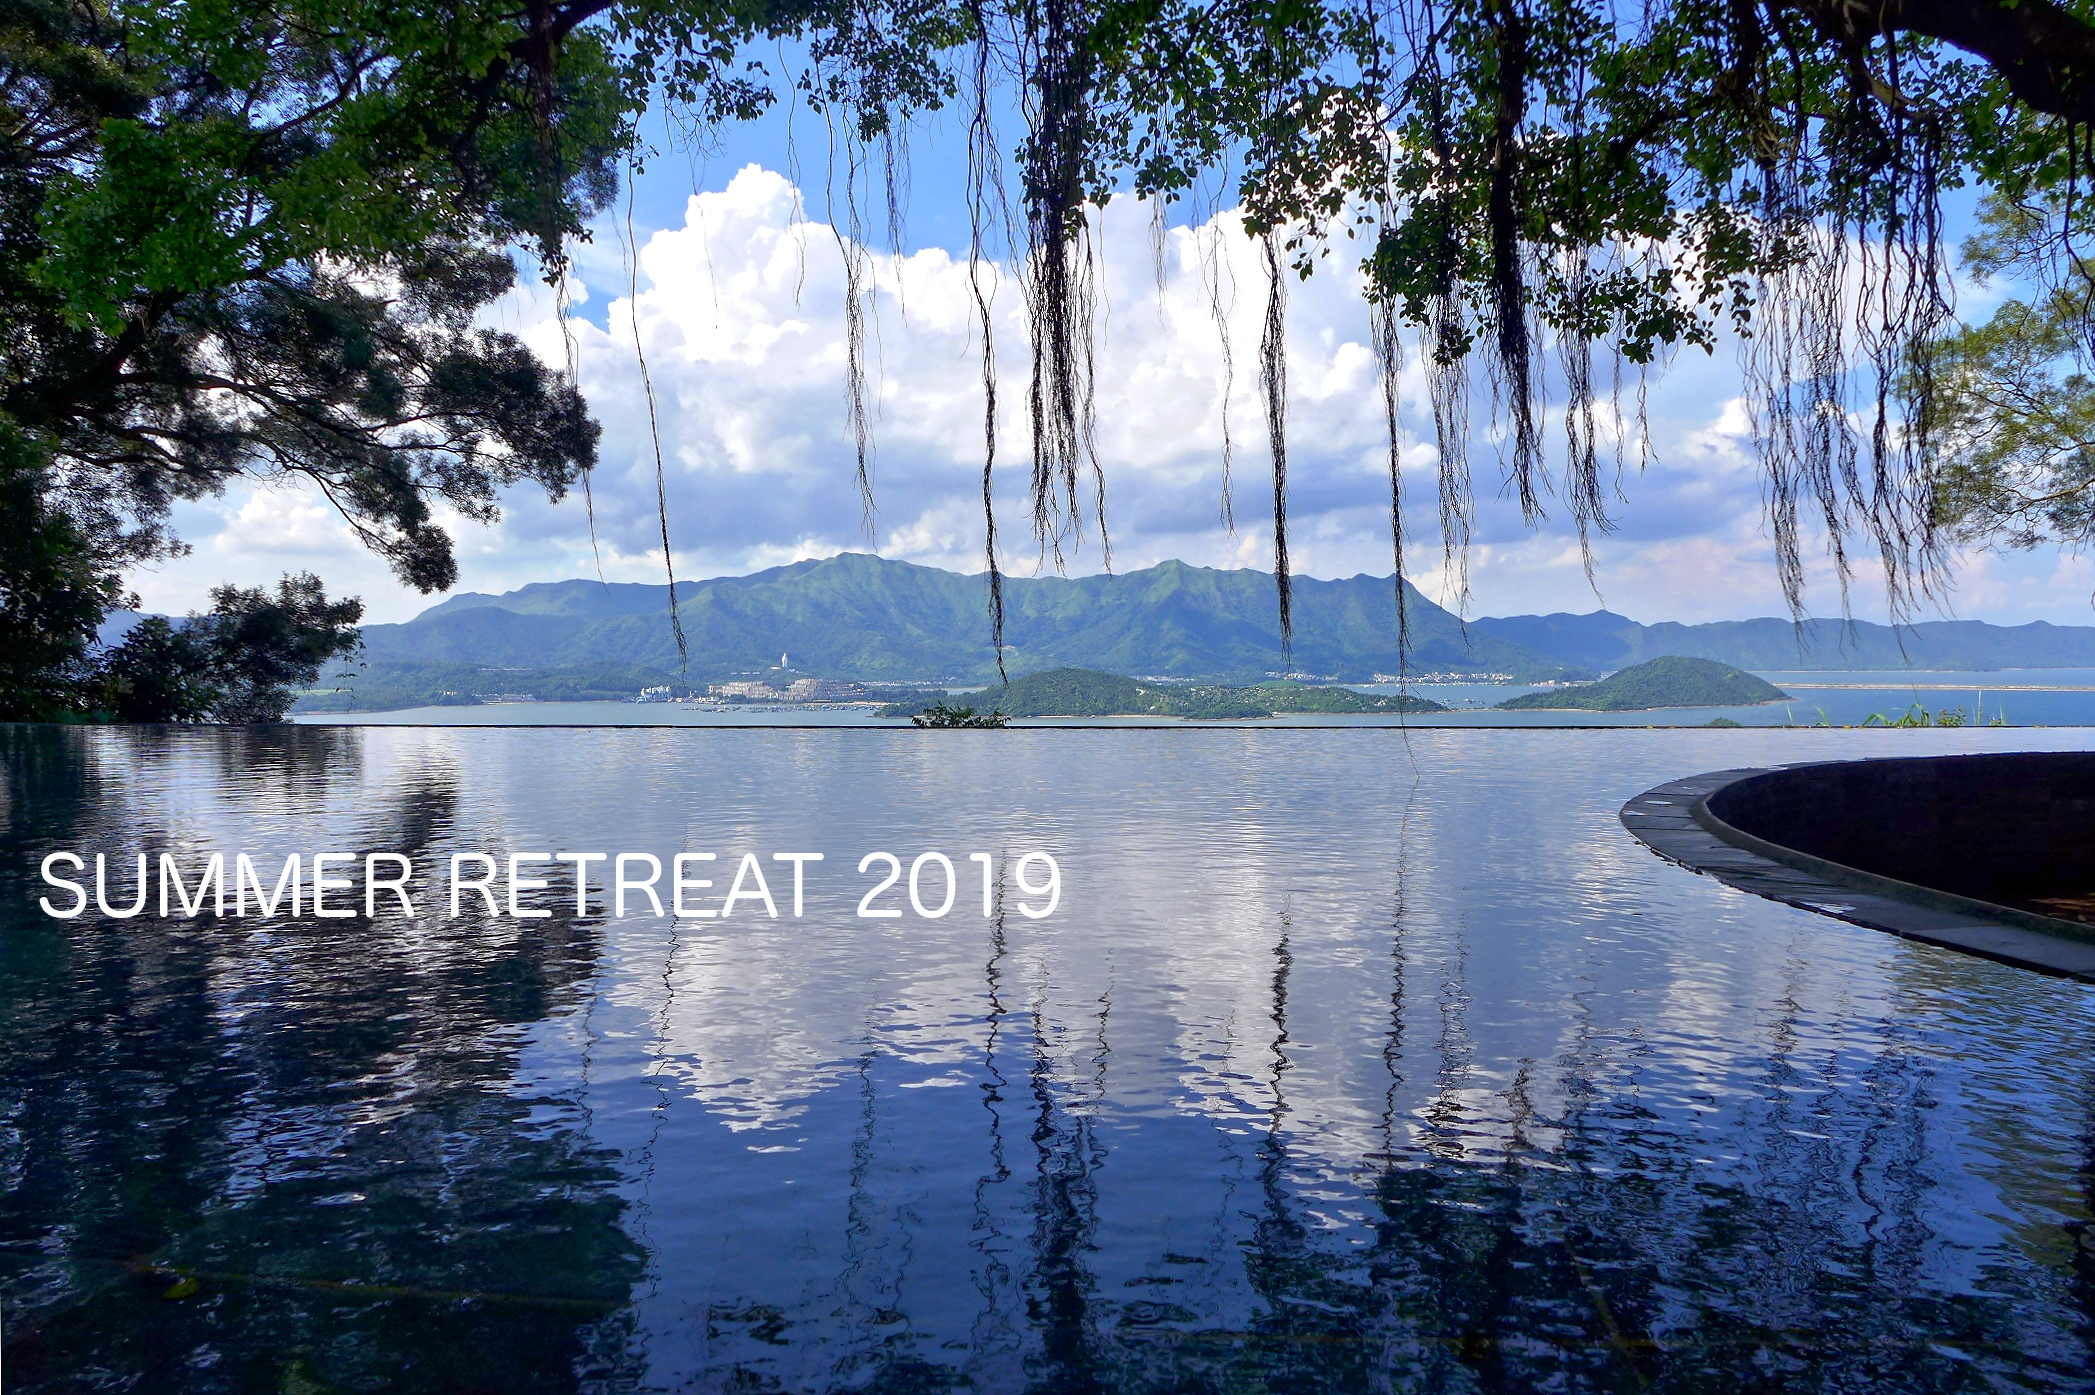 SummerRetreat2019